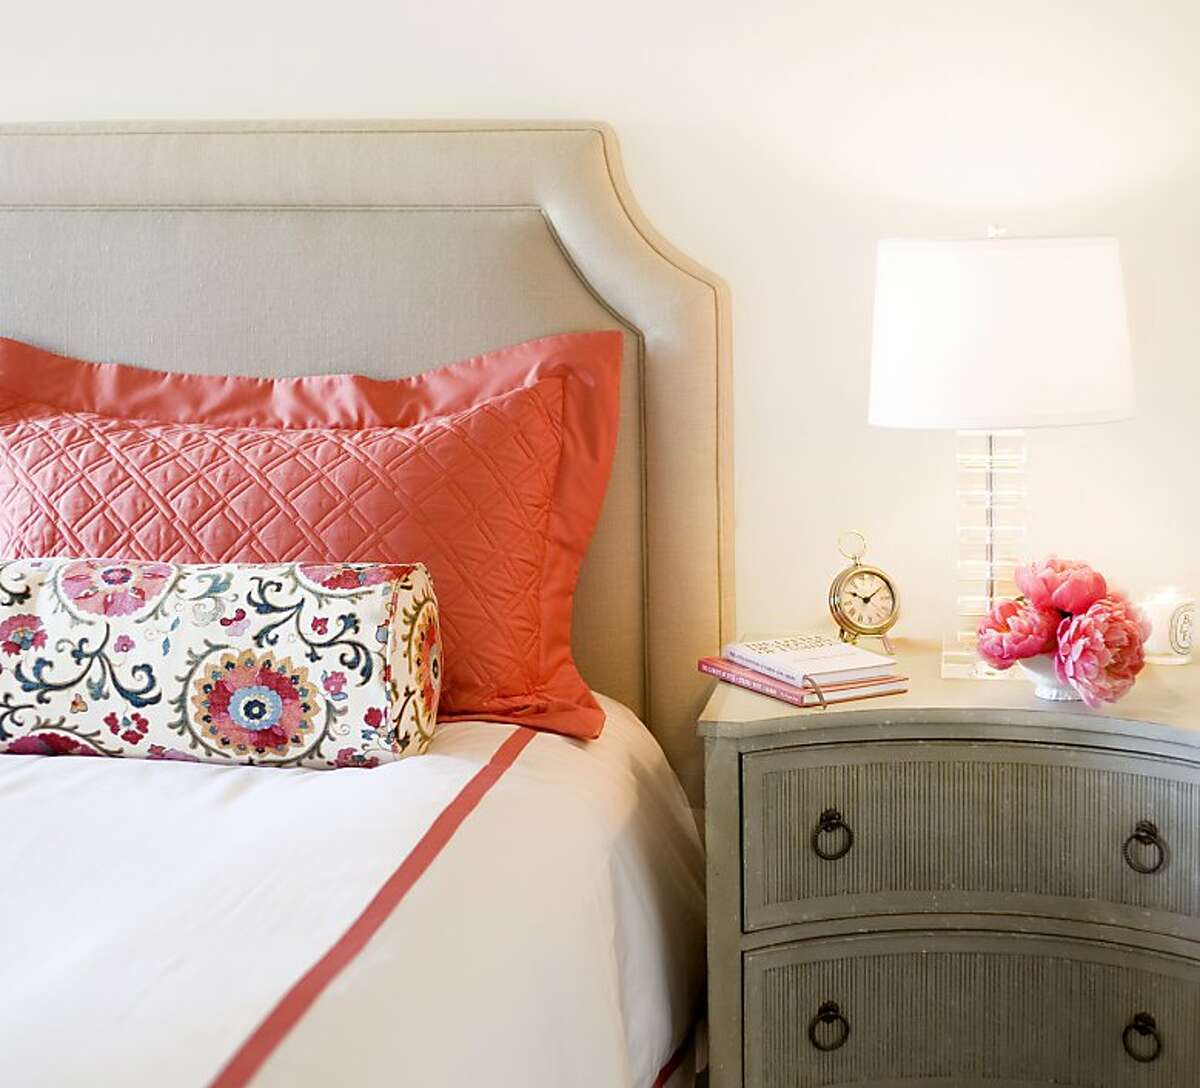 Matouk linens: There is nothing quite as luxurious as crisp cotton bedding. I am a big fan of Matouk s Lowell line. The style is a nod to classic hotel bedding but a rainbow of ribbon trim options adds a fun twist. (www.matouk.com)